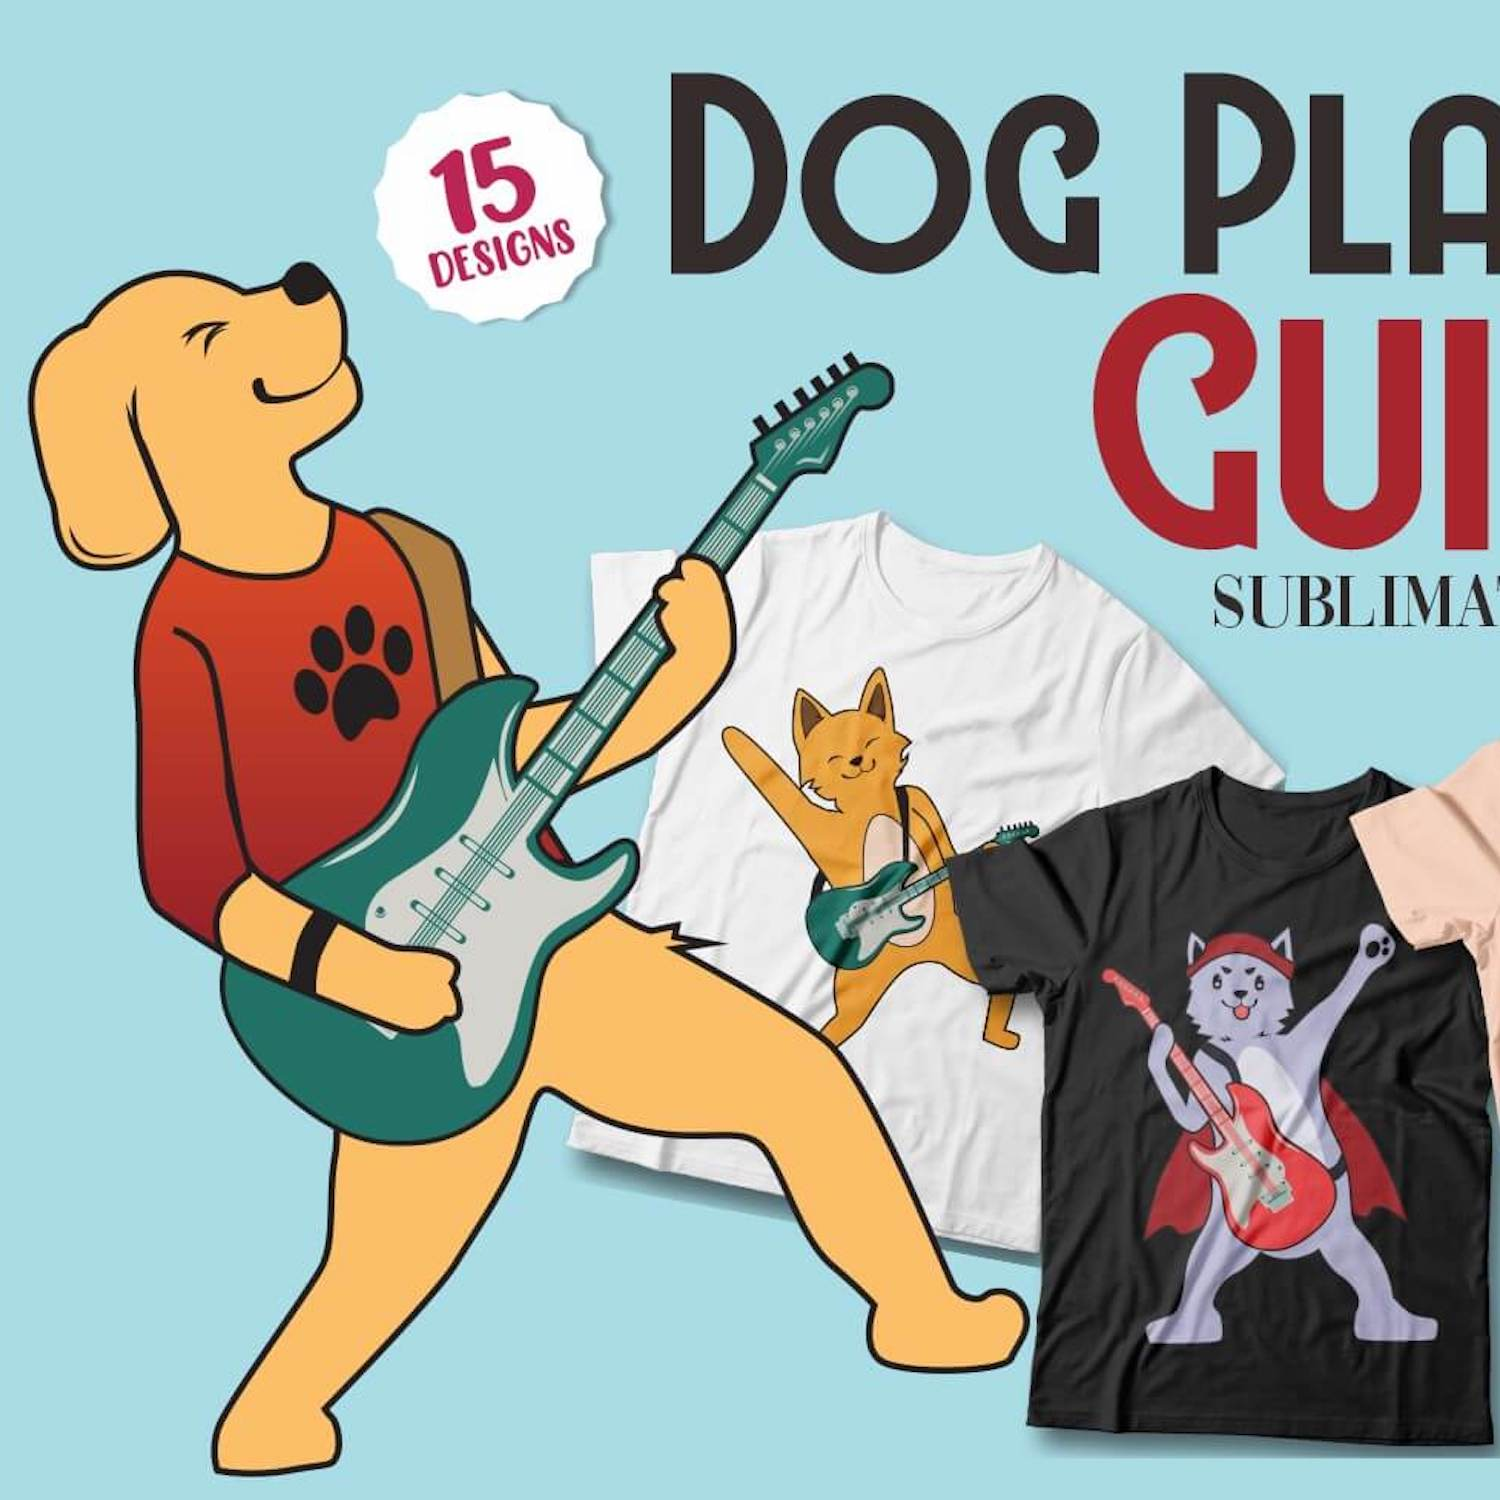 Dog Playing Guitar T-Shirt Designs cover image.